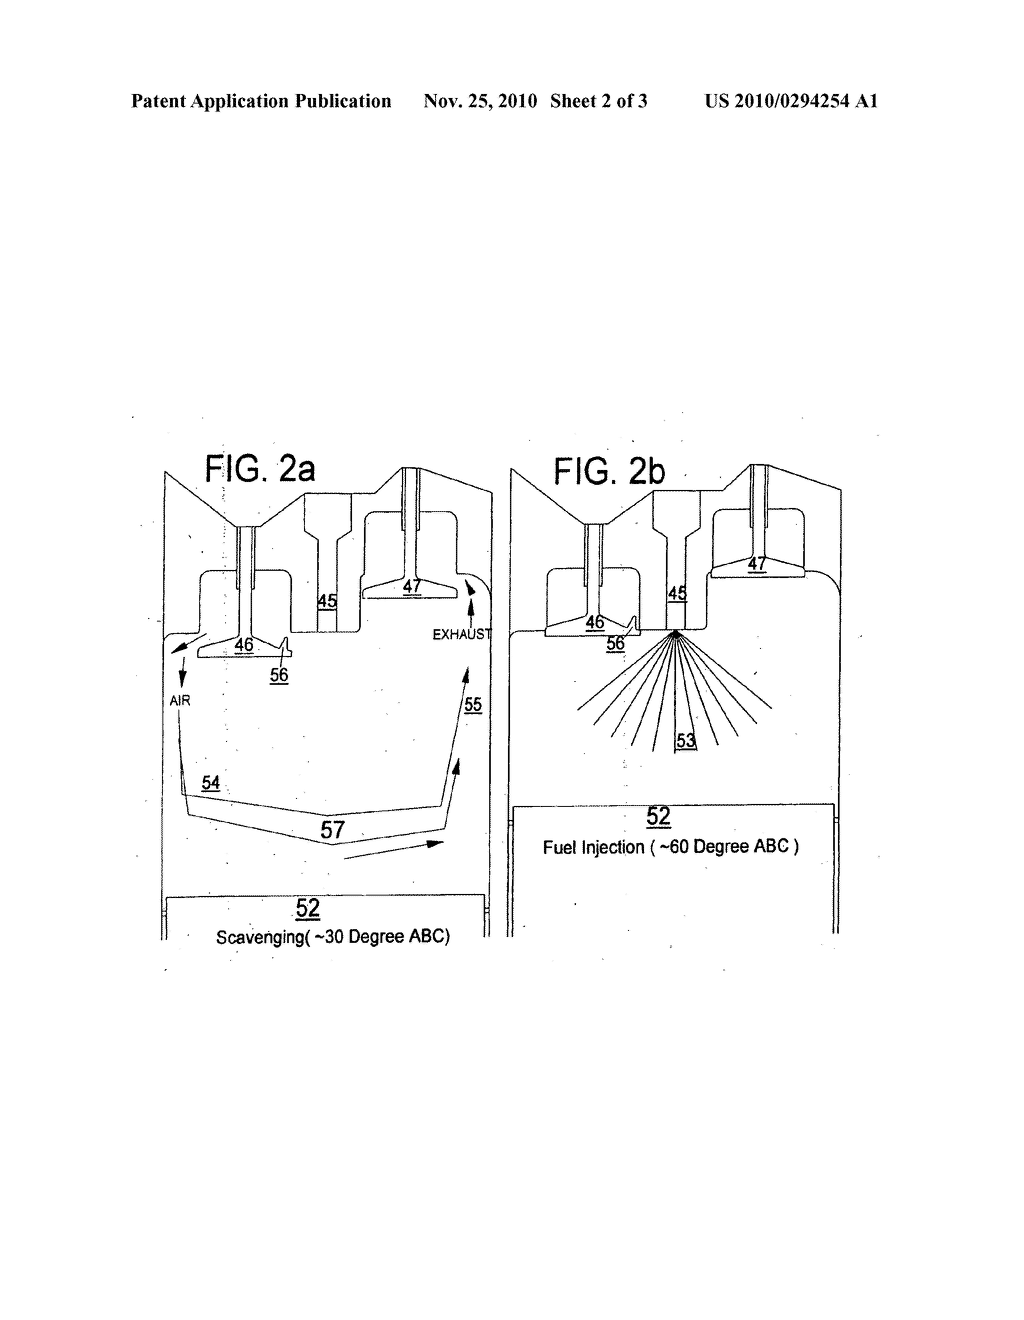 inverted cross scavenged, two overhead valve, 2 stroke engine overhead valve spring compressor tool inverted cross scavenged, two overhead valve, 2 stroke engine diagram, schematic, and image 03